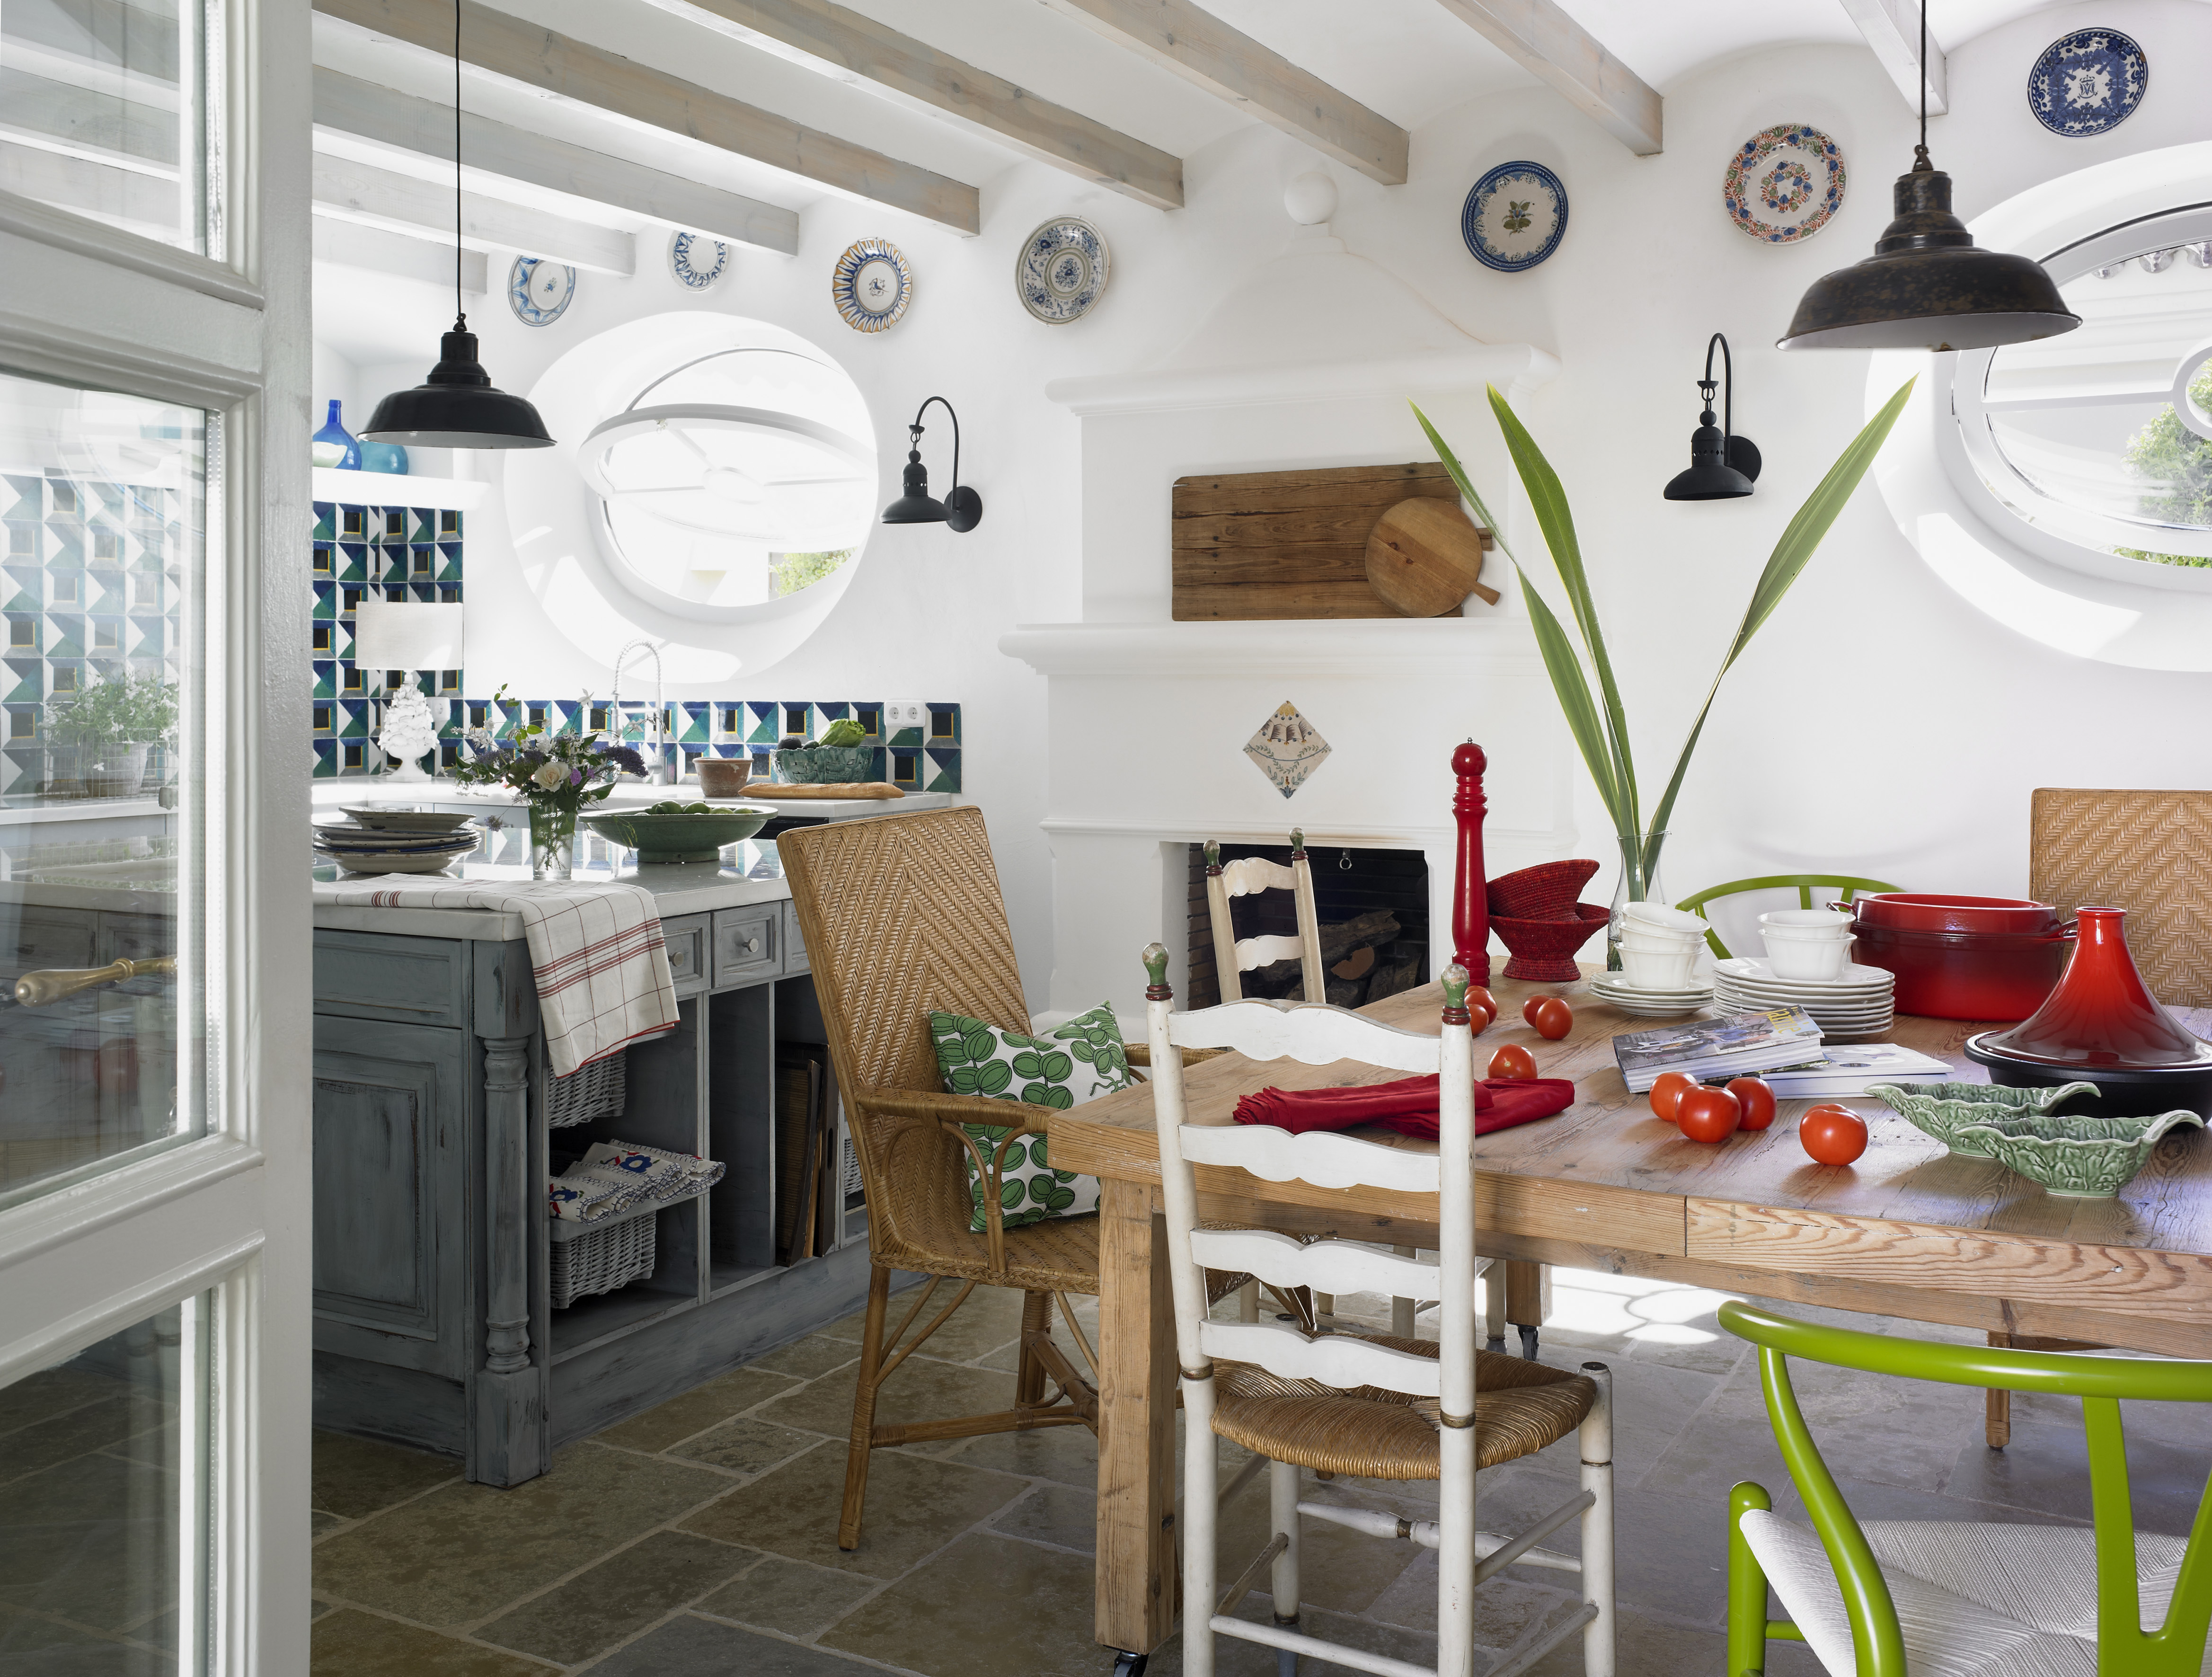 A kitchen in Sotogrande designed by Melian Randolph | Directorio Deco by Gloria Gonzalez